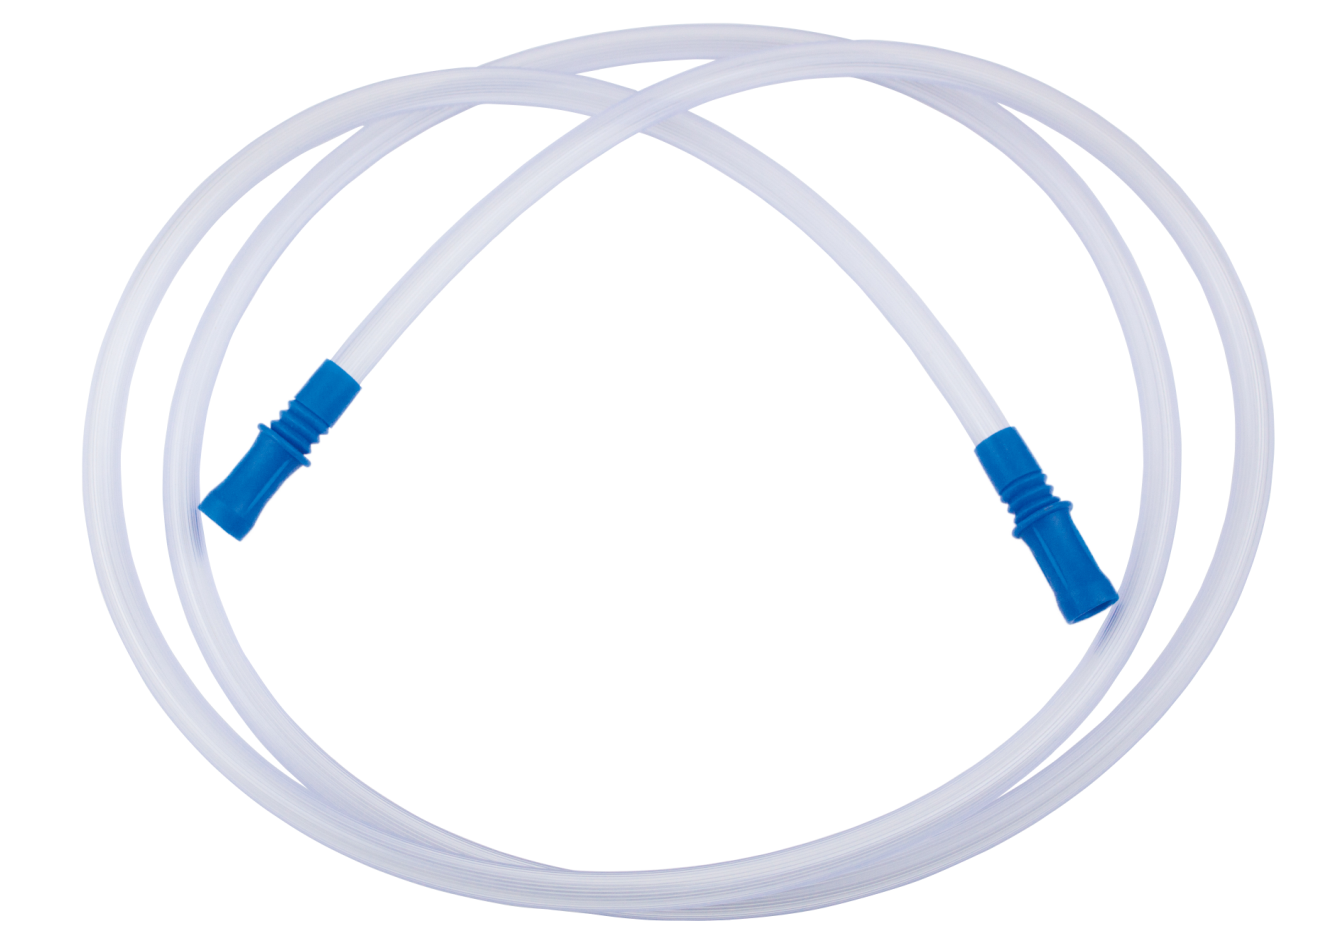 Connecting catheter